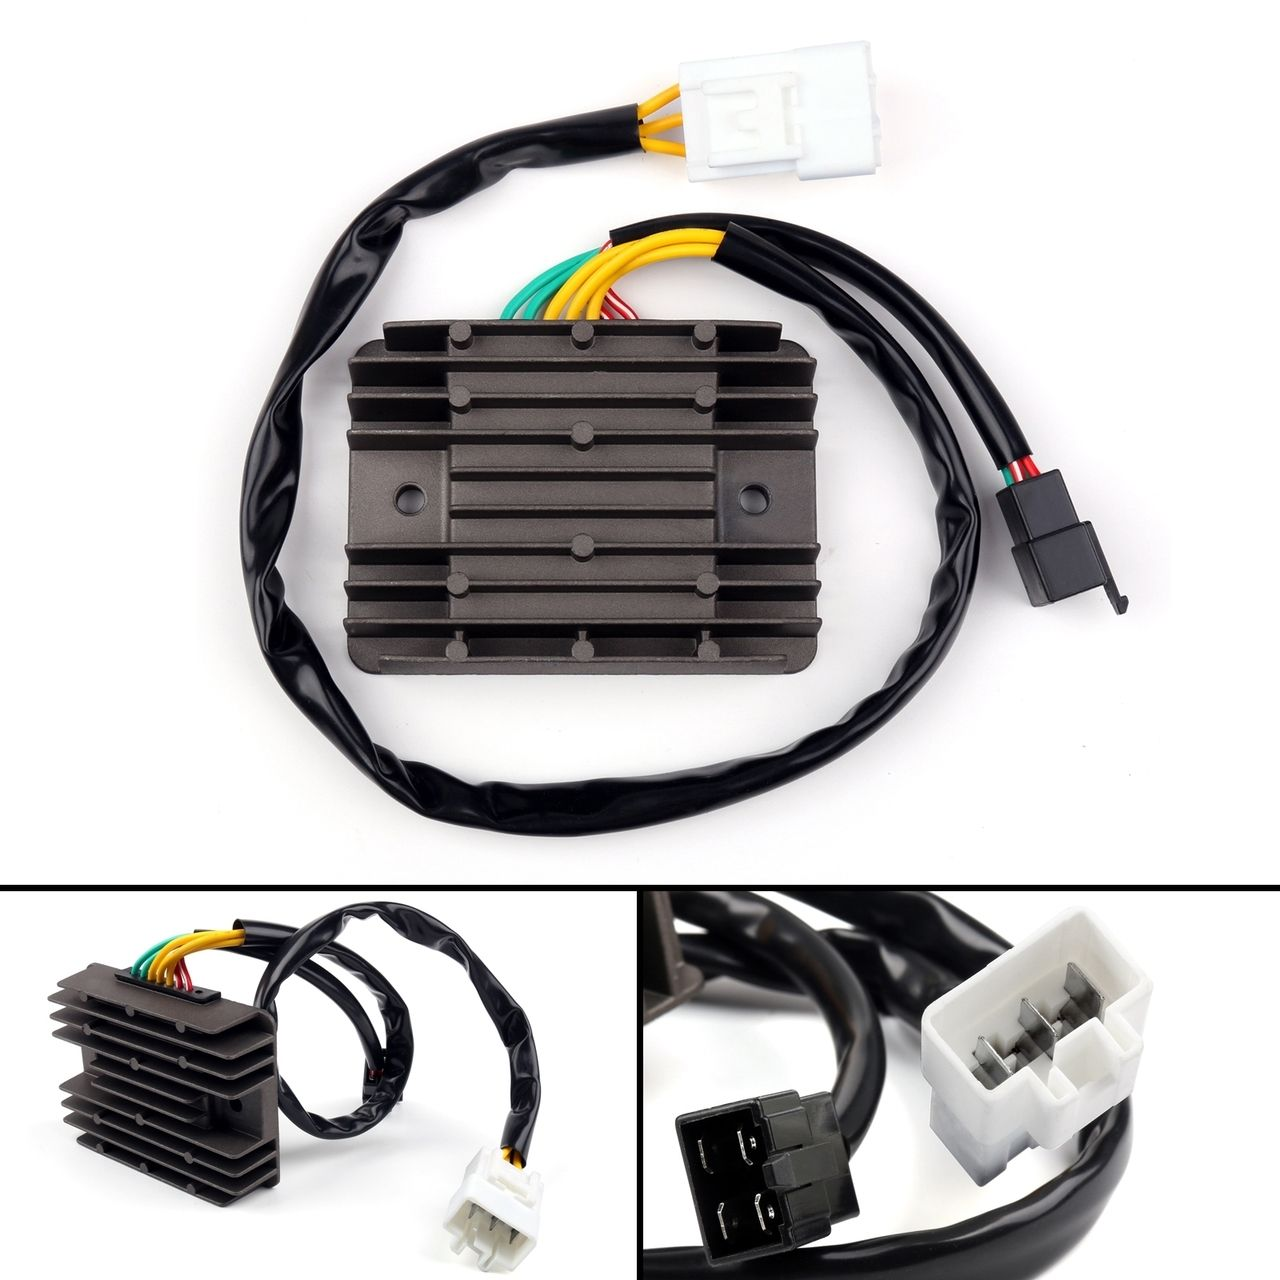 Voltage Regulator Rectifier For Aprilia Rsv4 1000 Racing Factory L E 15 16 1000rr 15 17 Voltage Regulator Aprilia Regulators